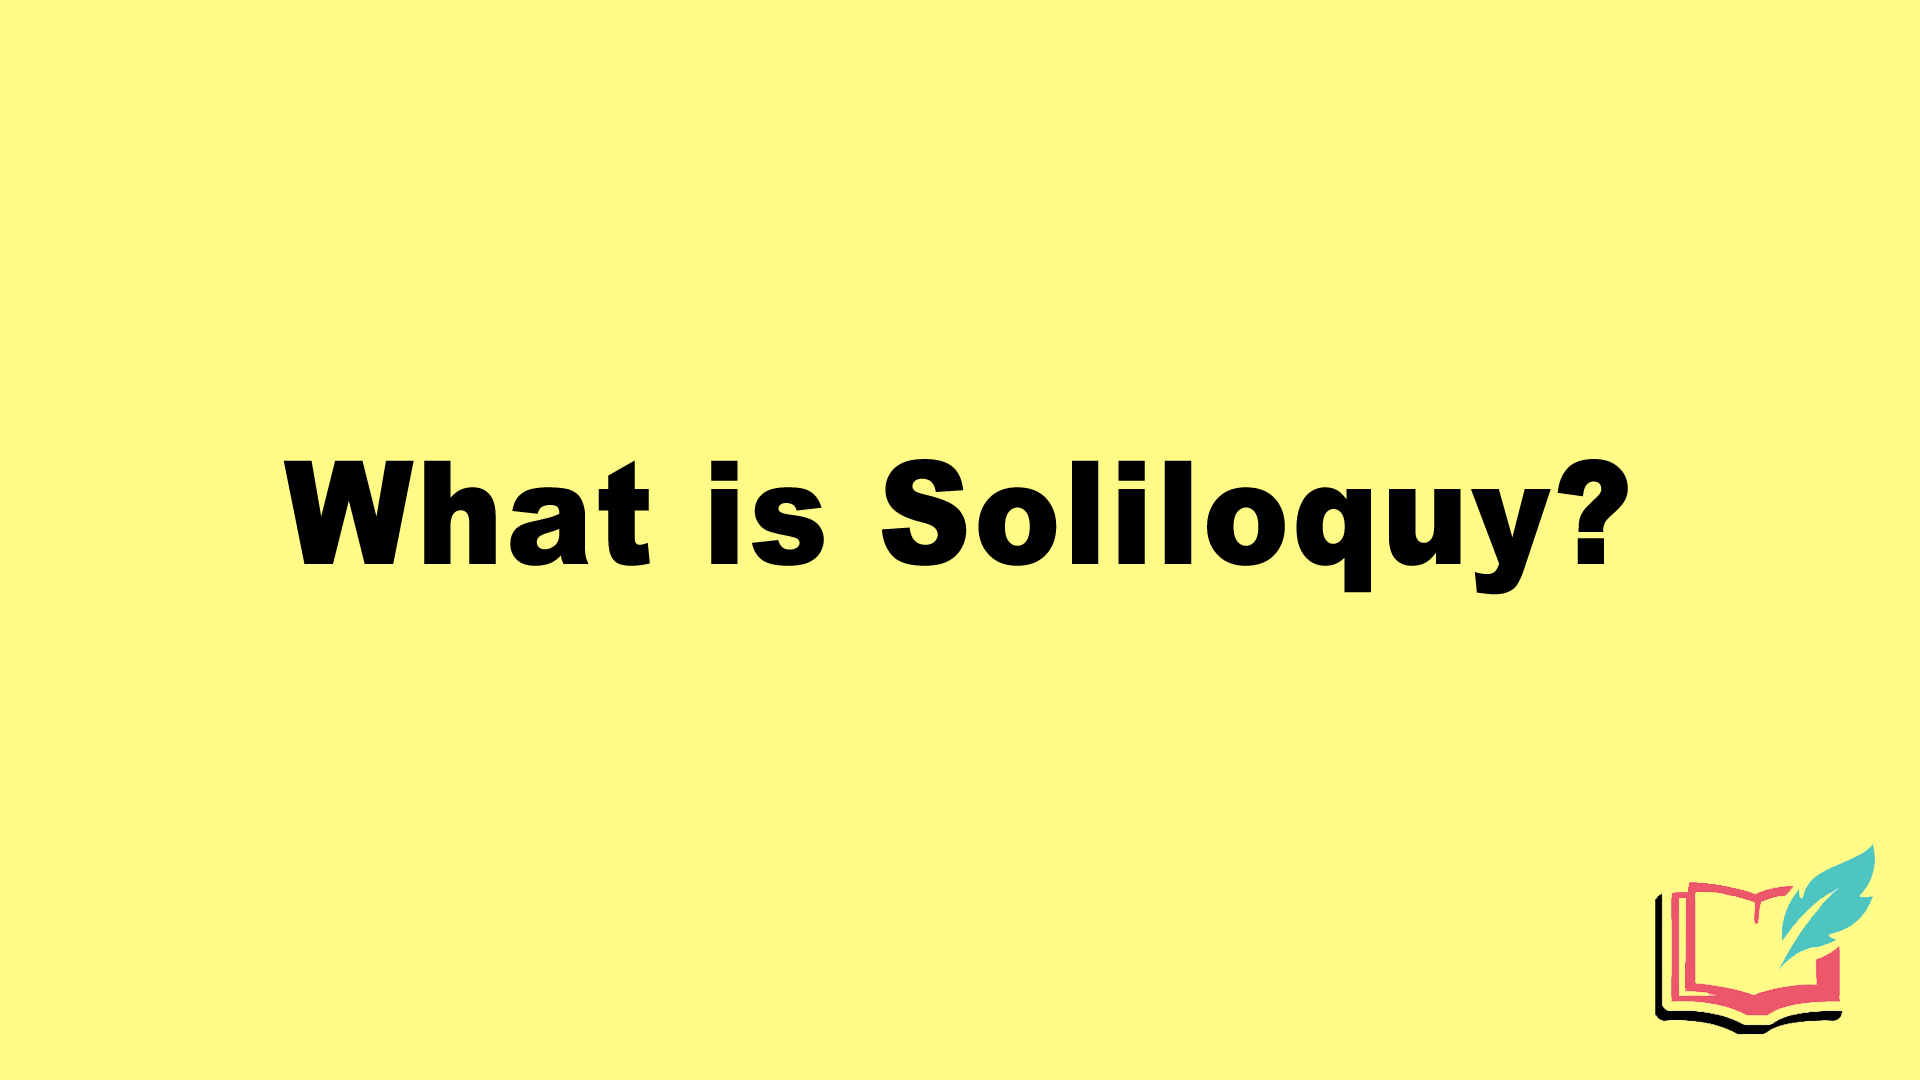 soliloquy as a literary term